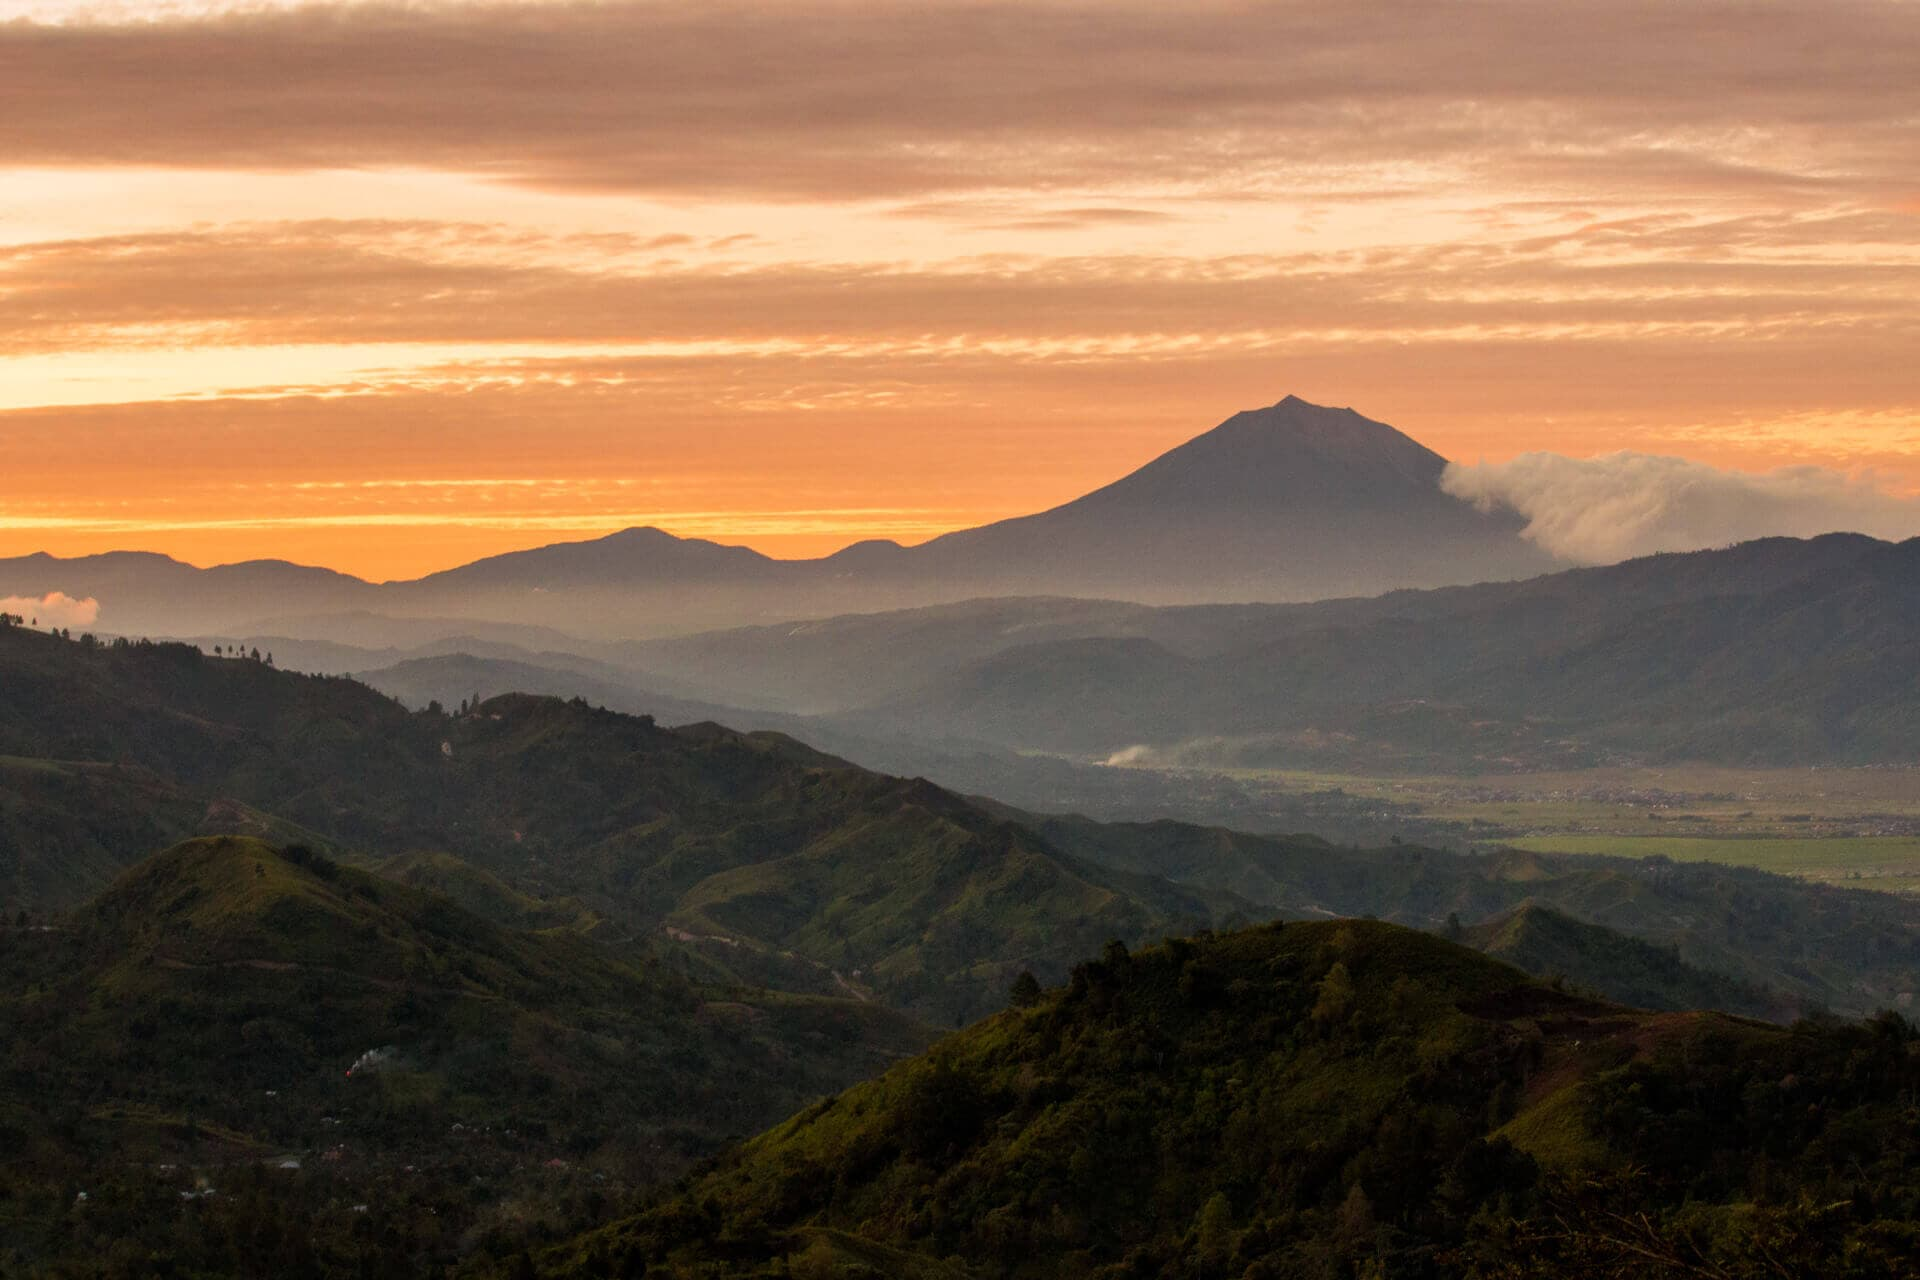 Mt. Kerinci and the Kerinci Valley at Sunset as seen from Bukit Khayangan, Kerinci, Jambi, Sumatra, Indonesia